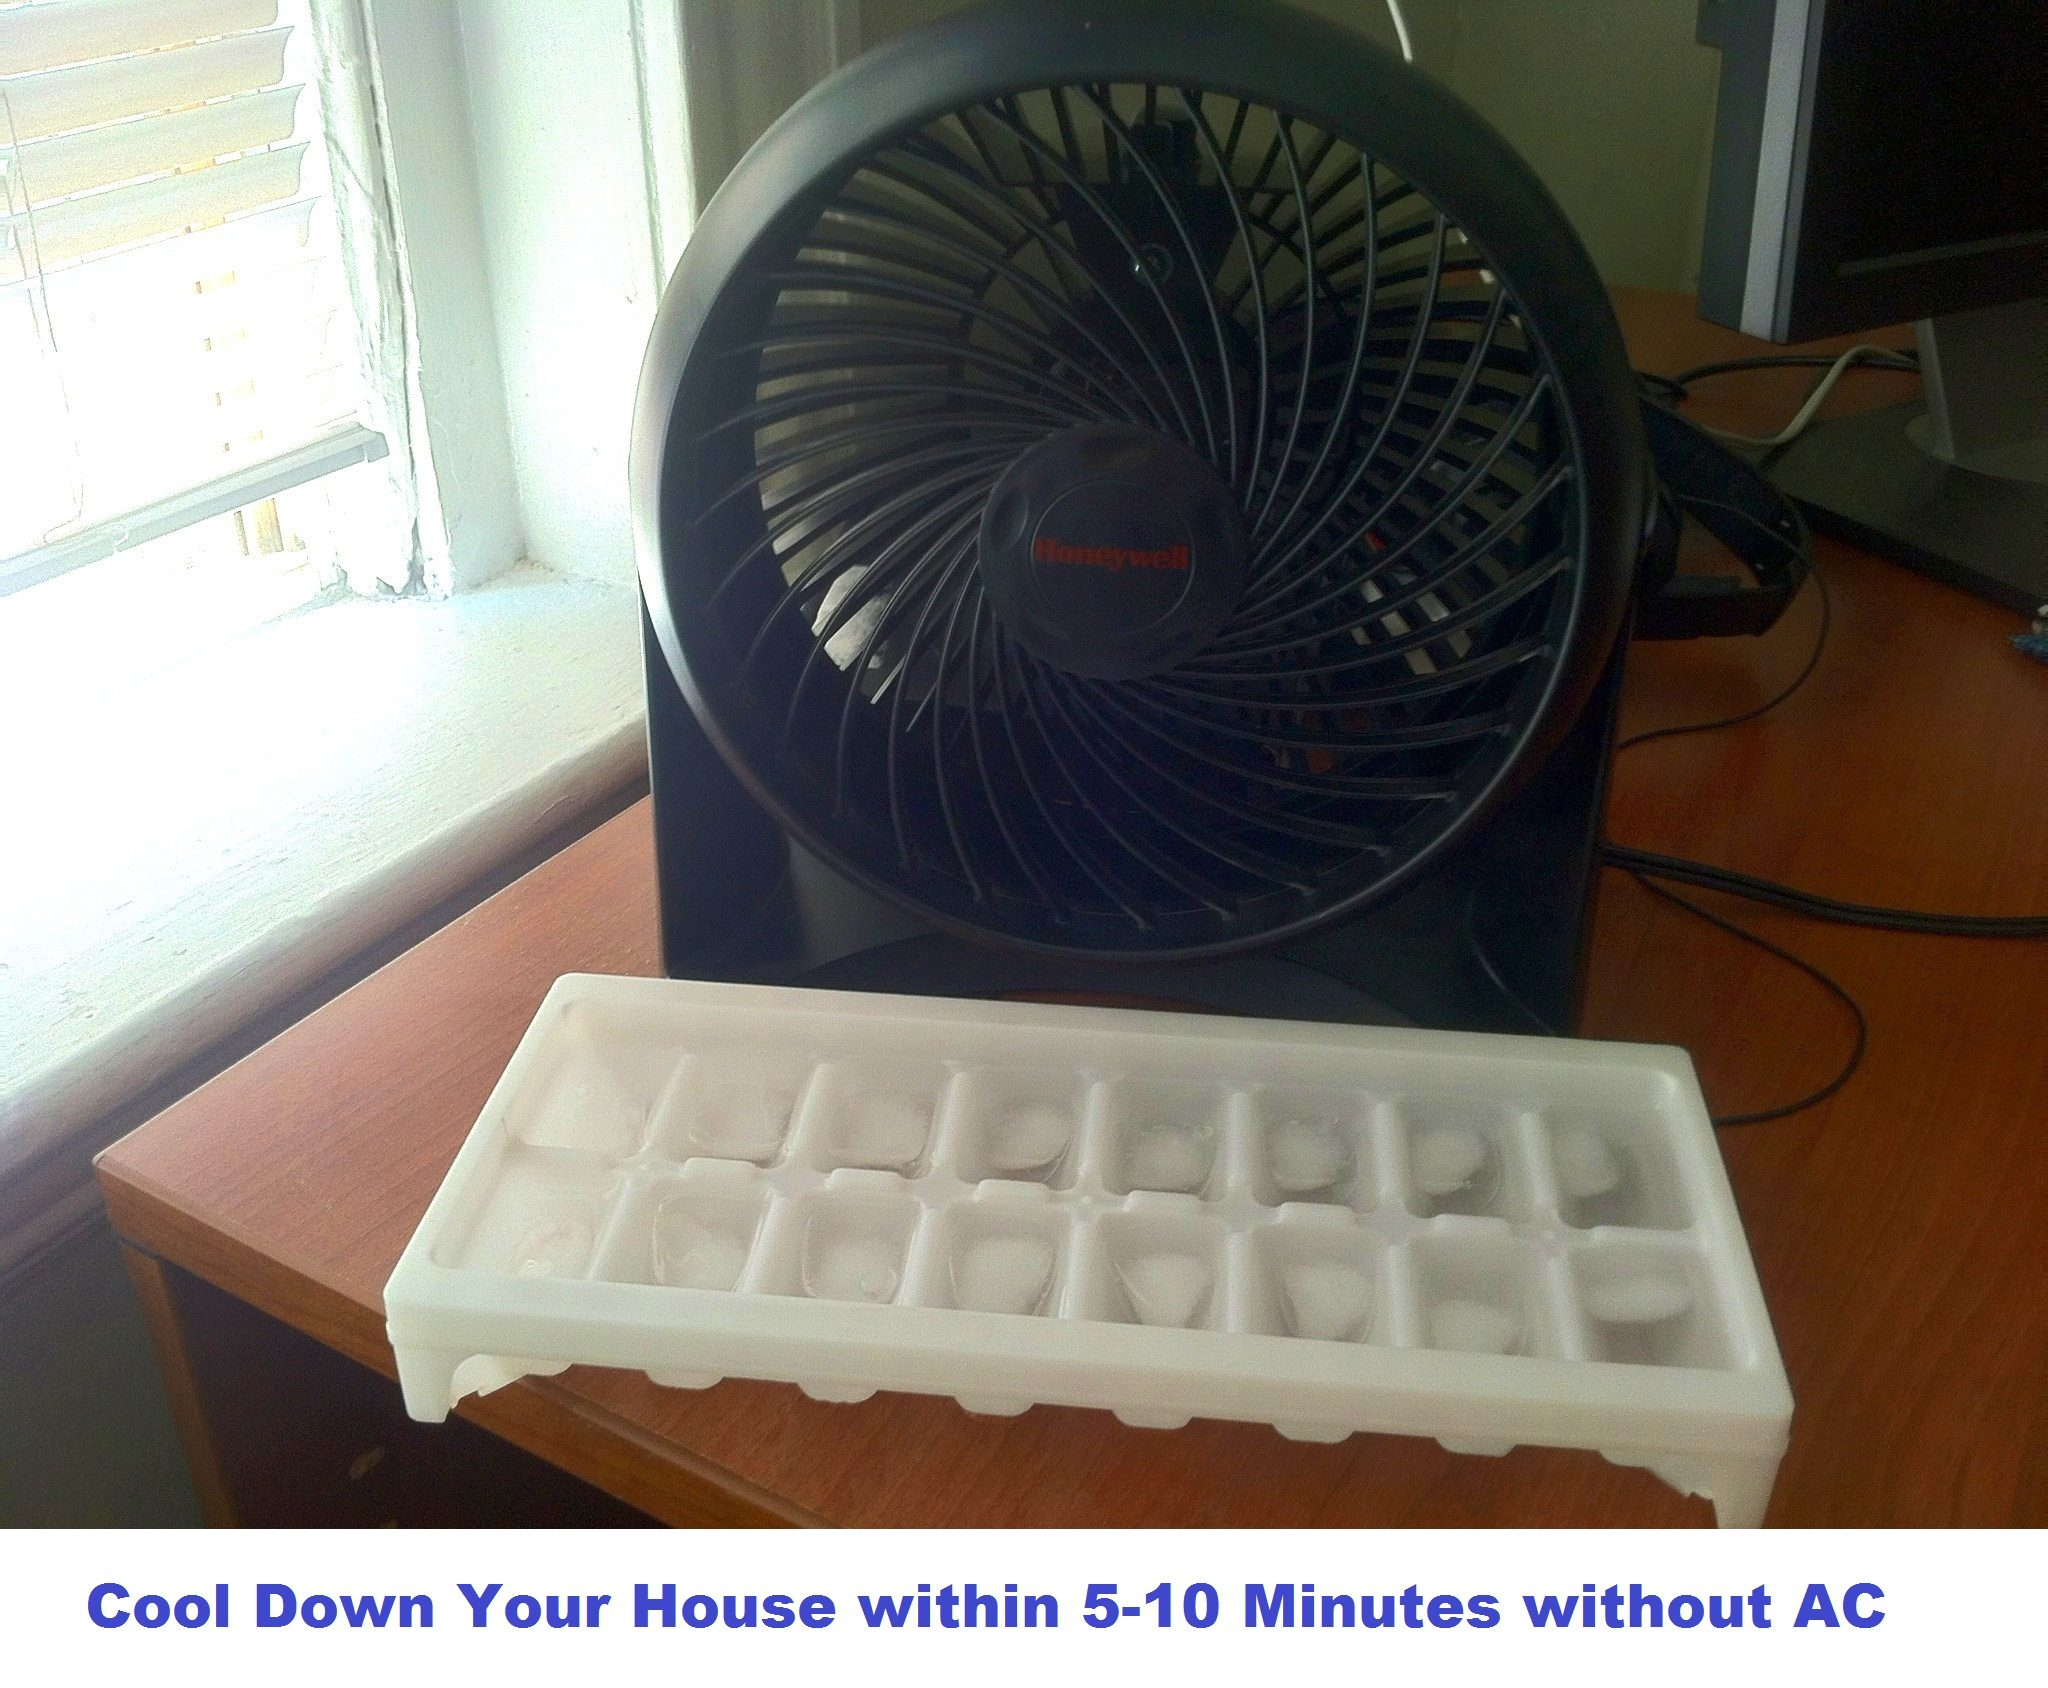 cool down a house without AC